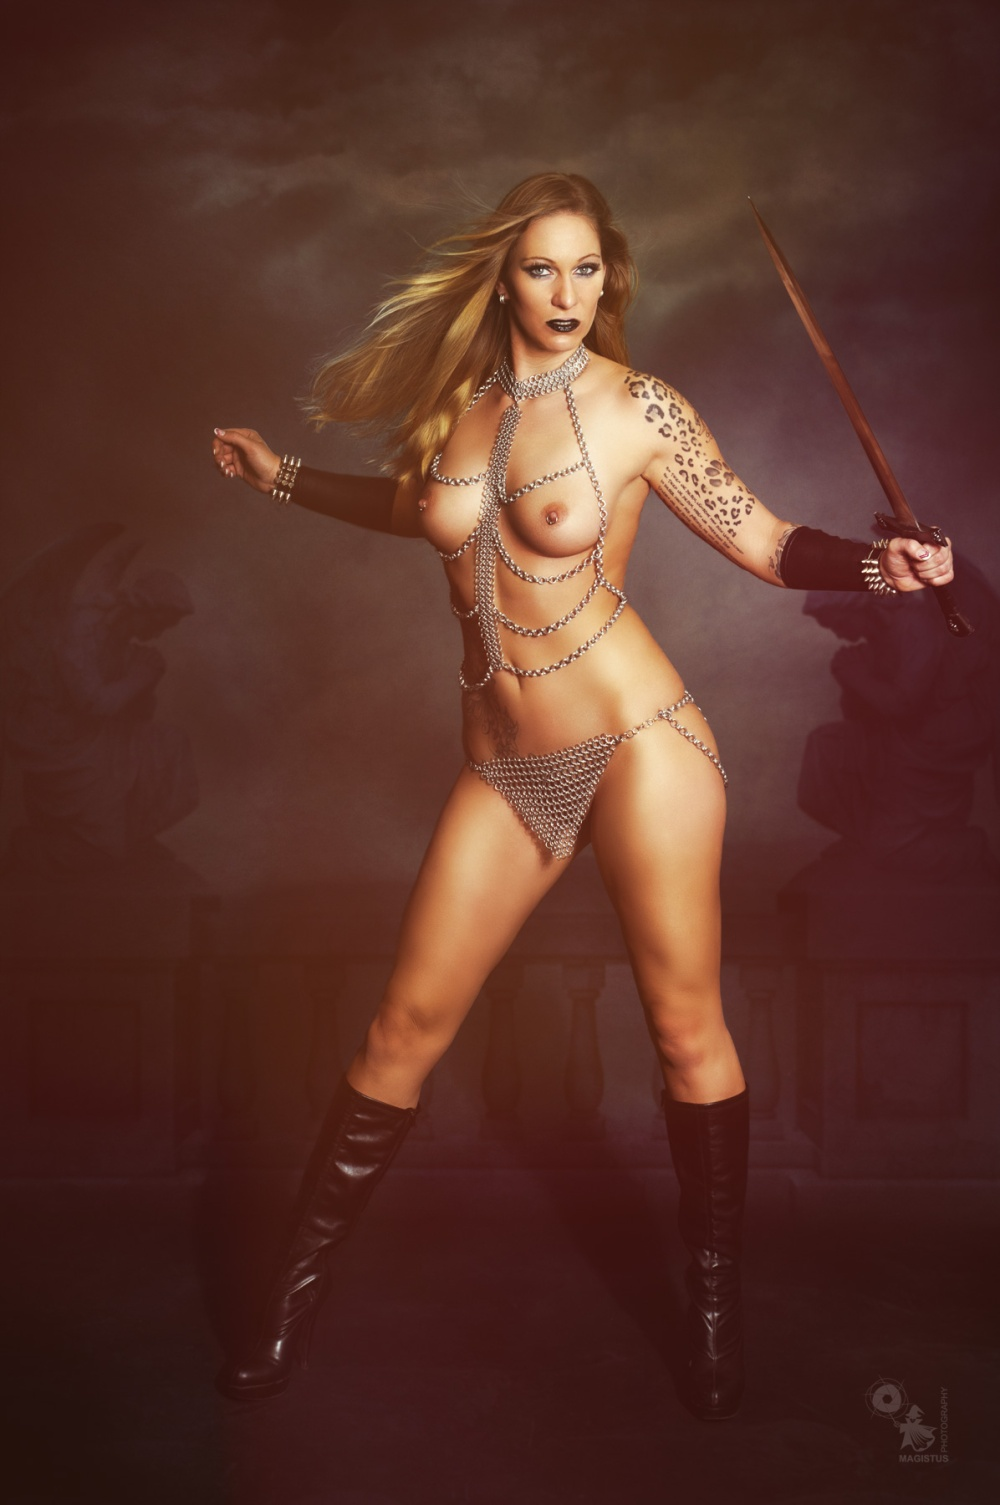 Warrior Princess - Super hot and sexy naked fightergirl is posing in chainmail lingerie with a sword shwoing off her super hot body and naked pierced boobs - © by Magistus